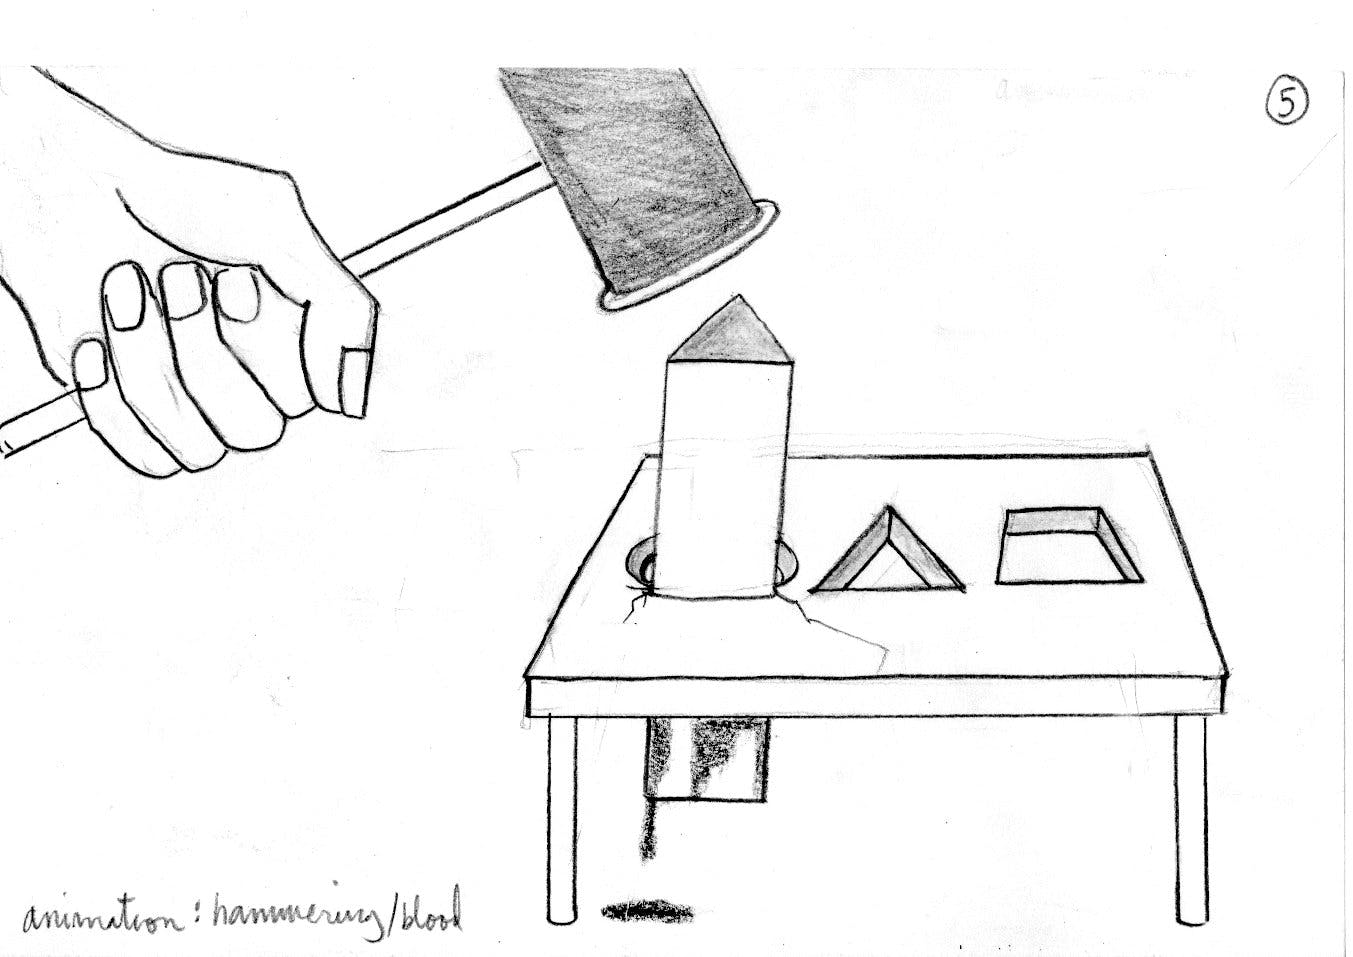 This sketch speaks to the idea of nonconformity, as a triangular peg is hammered through a round hole.